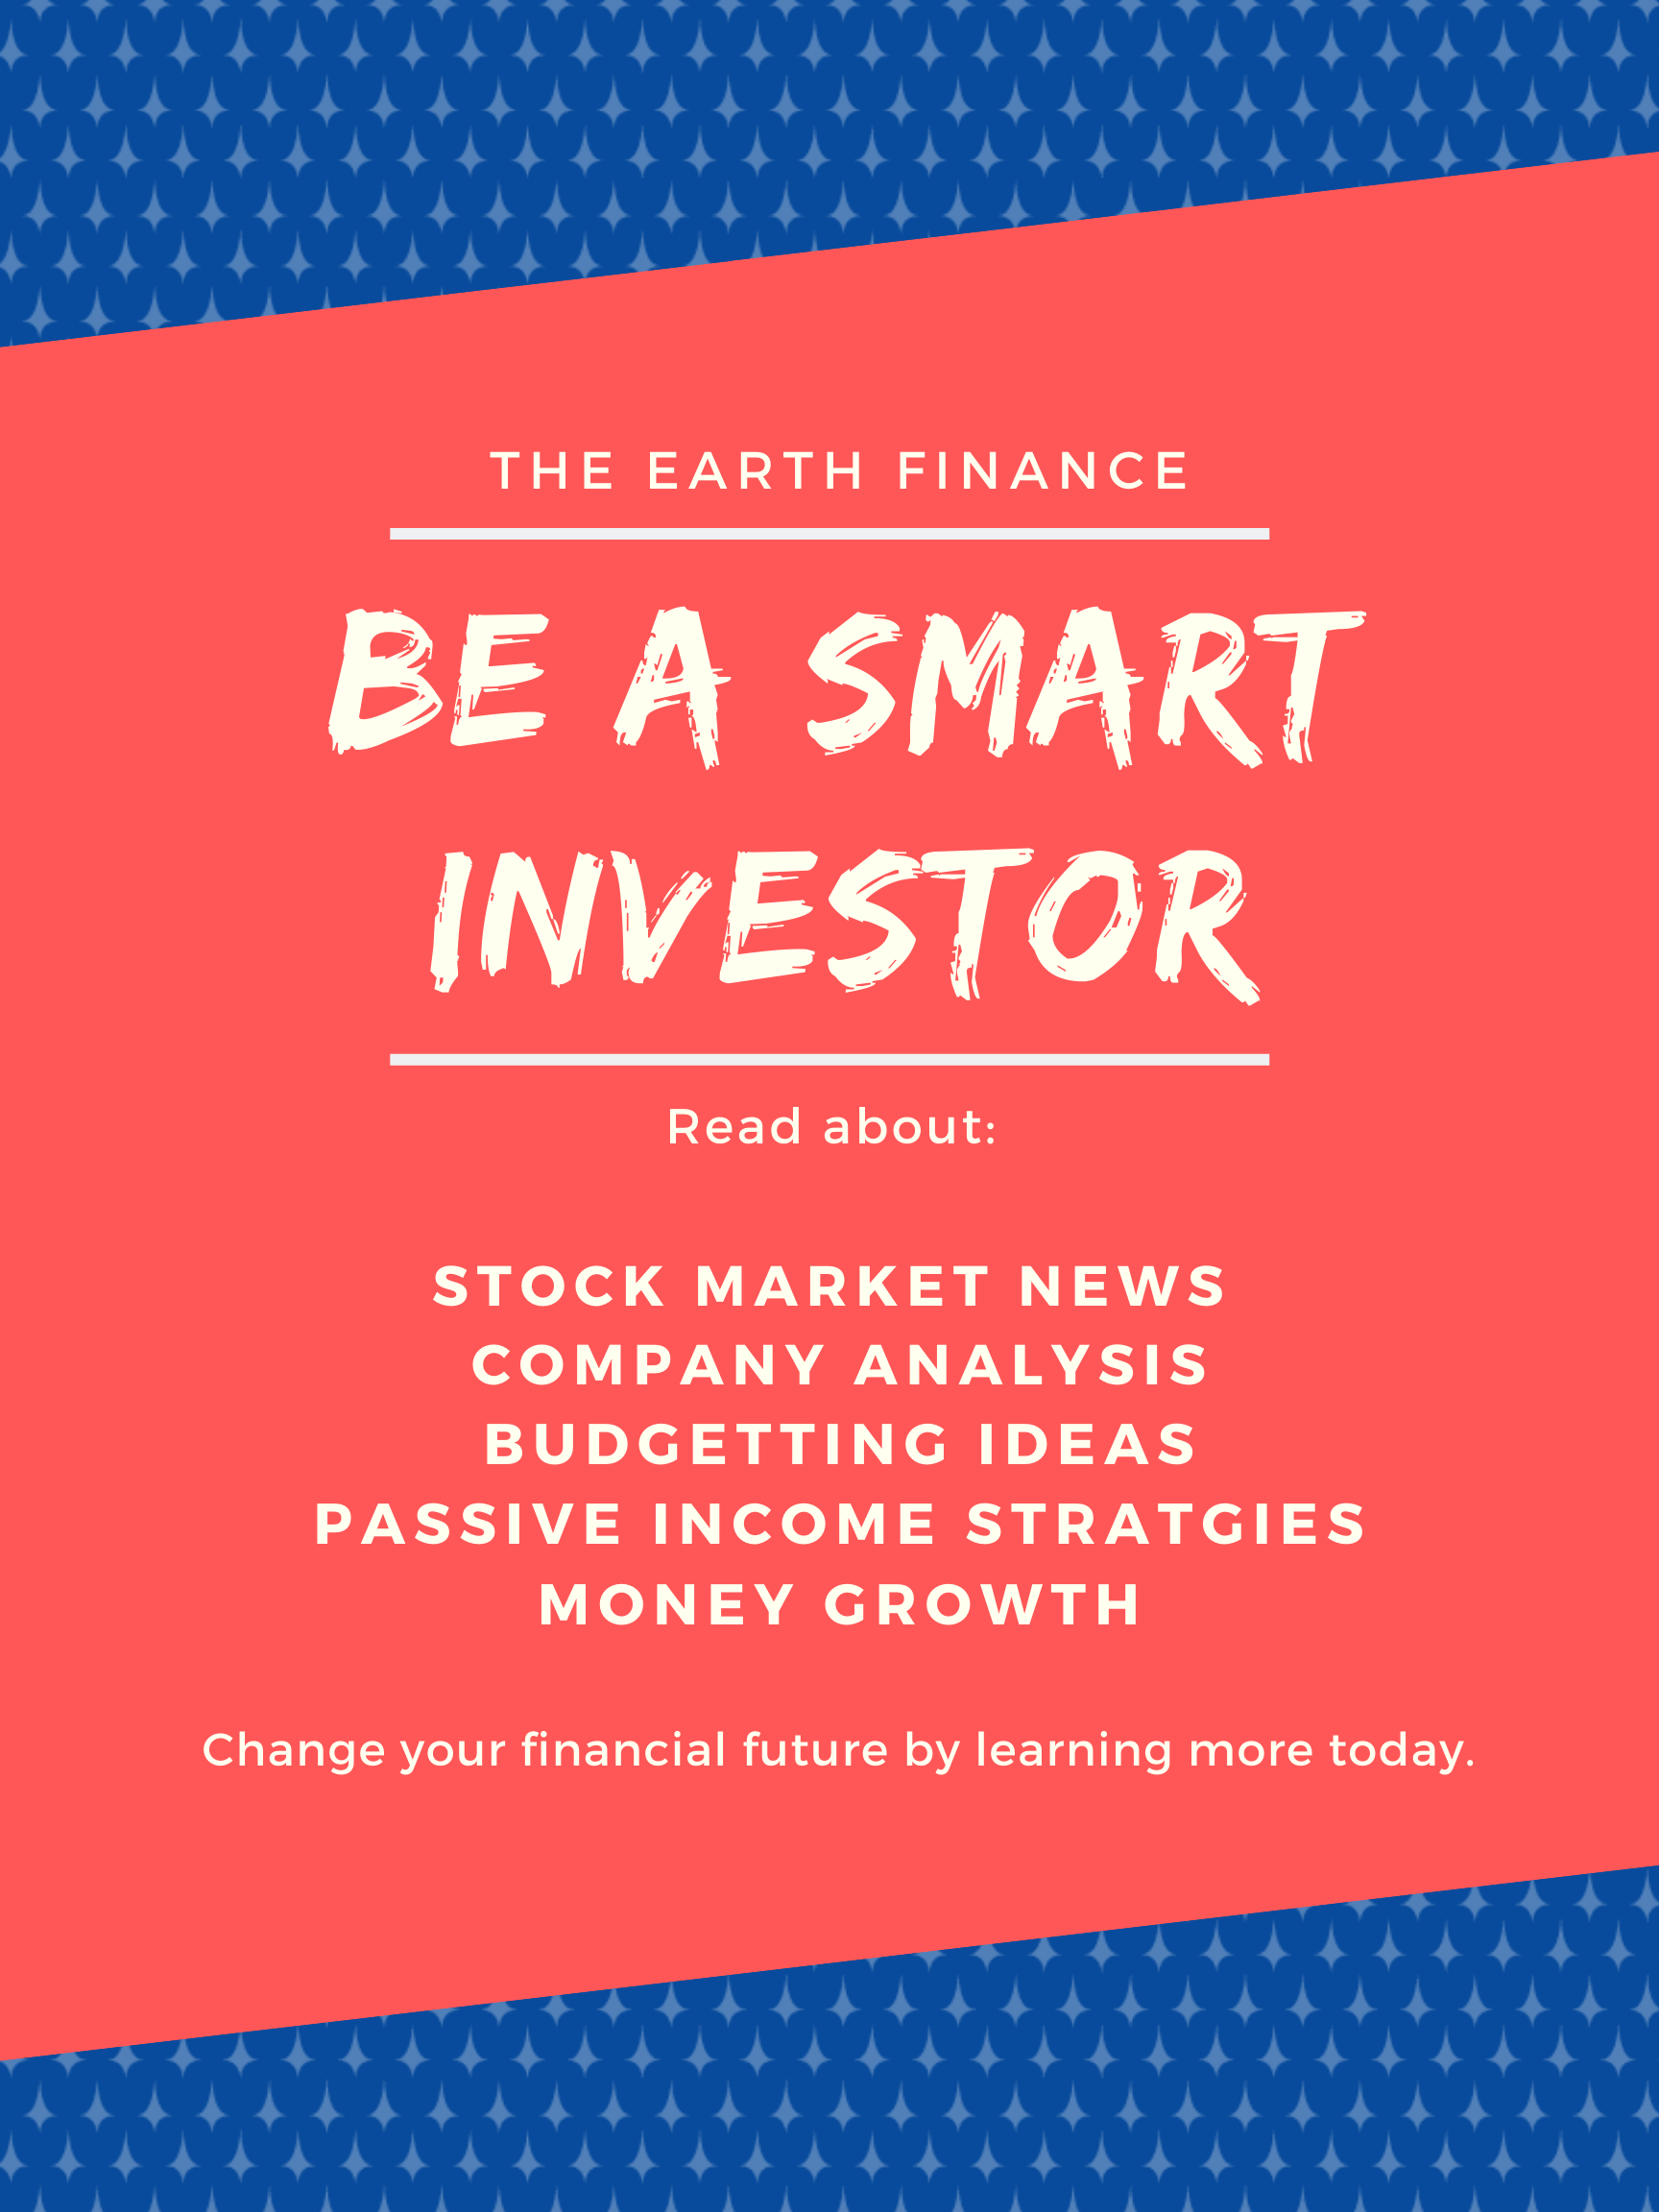 Investing for beginners can be overwhelming. Where is the best place to start? Earth Finance makes it easy to learn about stock market news, budgeting tips, passive income ideas, and so many more ways to help grow your money. If you are wondering how to start investing to create a passive income (side hustle) this is the best place to start! #money #investing #sidehustle #passiveincome #budgetting #news #dividend #robinhood